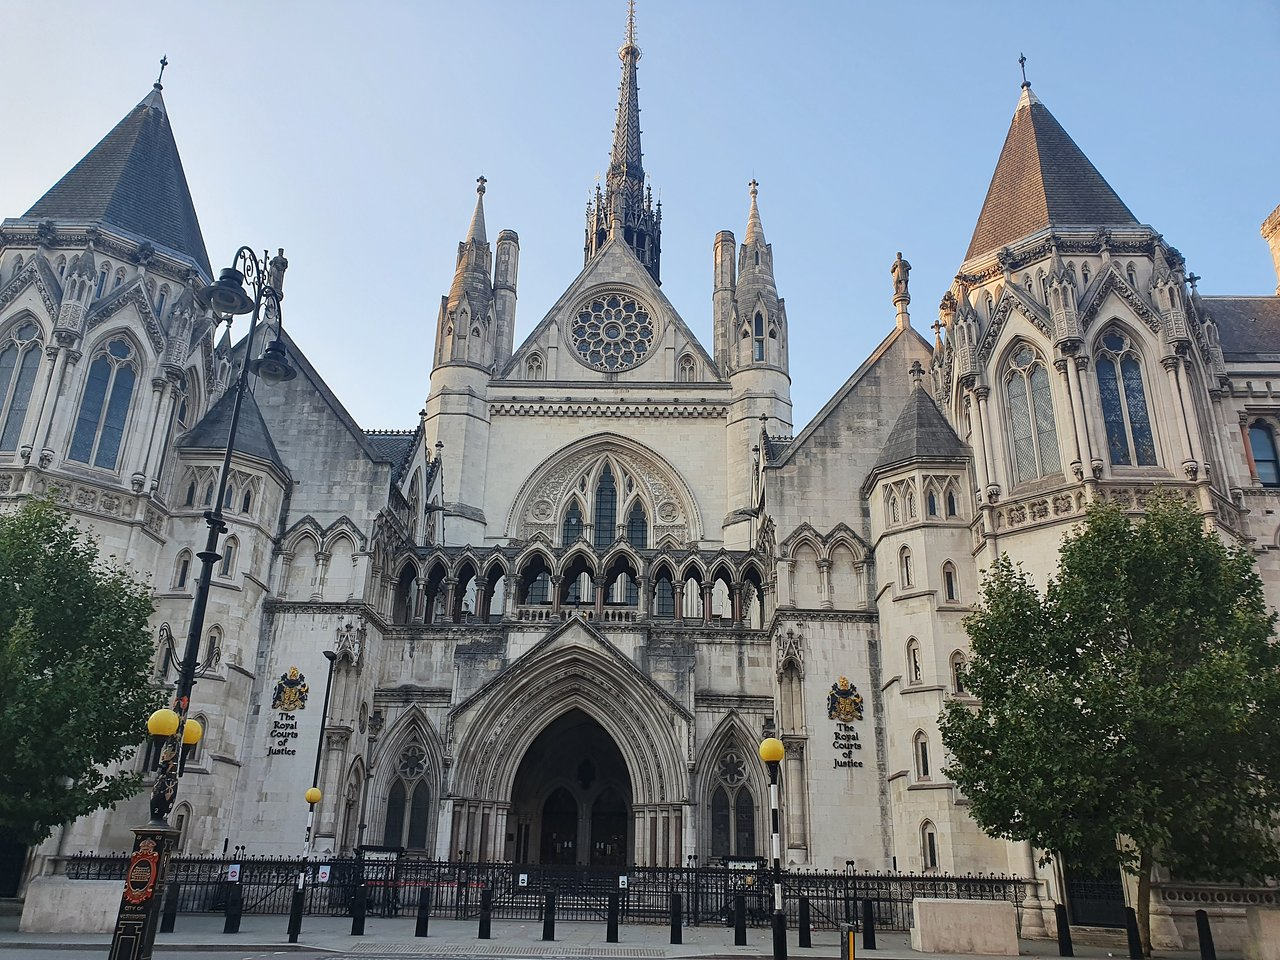 commercial court high court summary judgment cpr 24 business interruption insurance policy litigation london